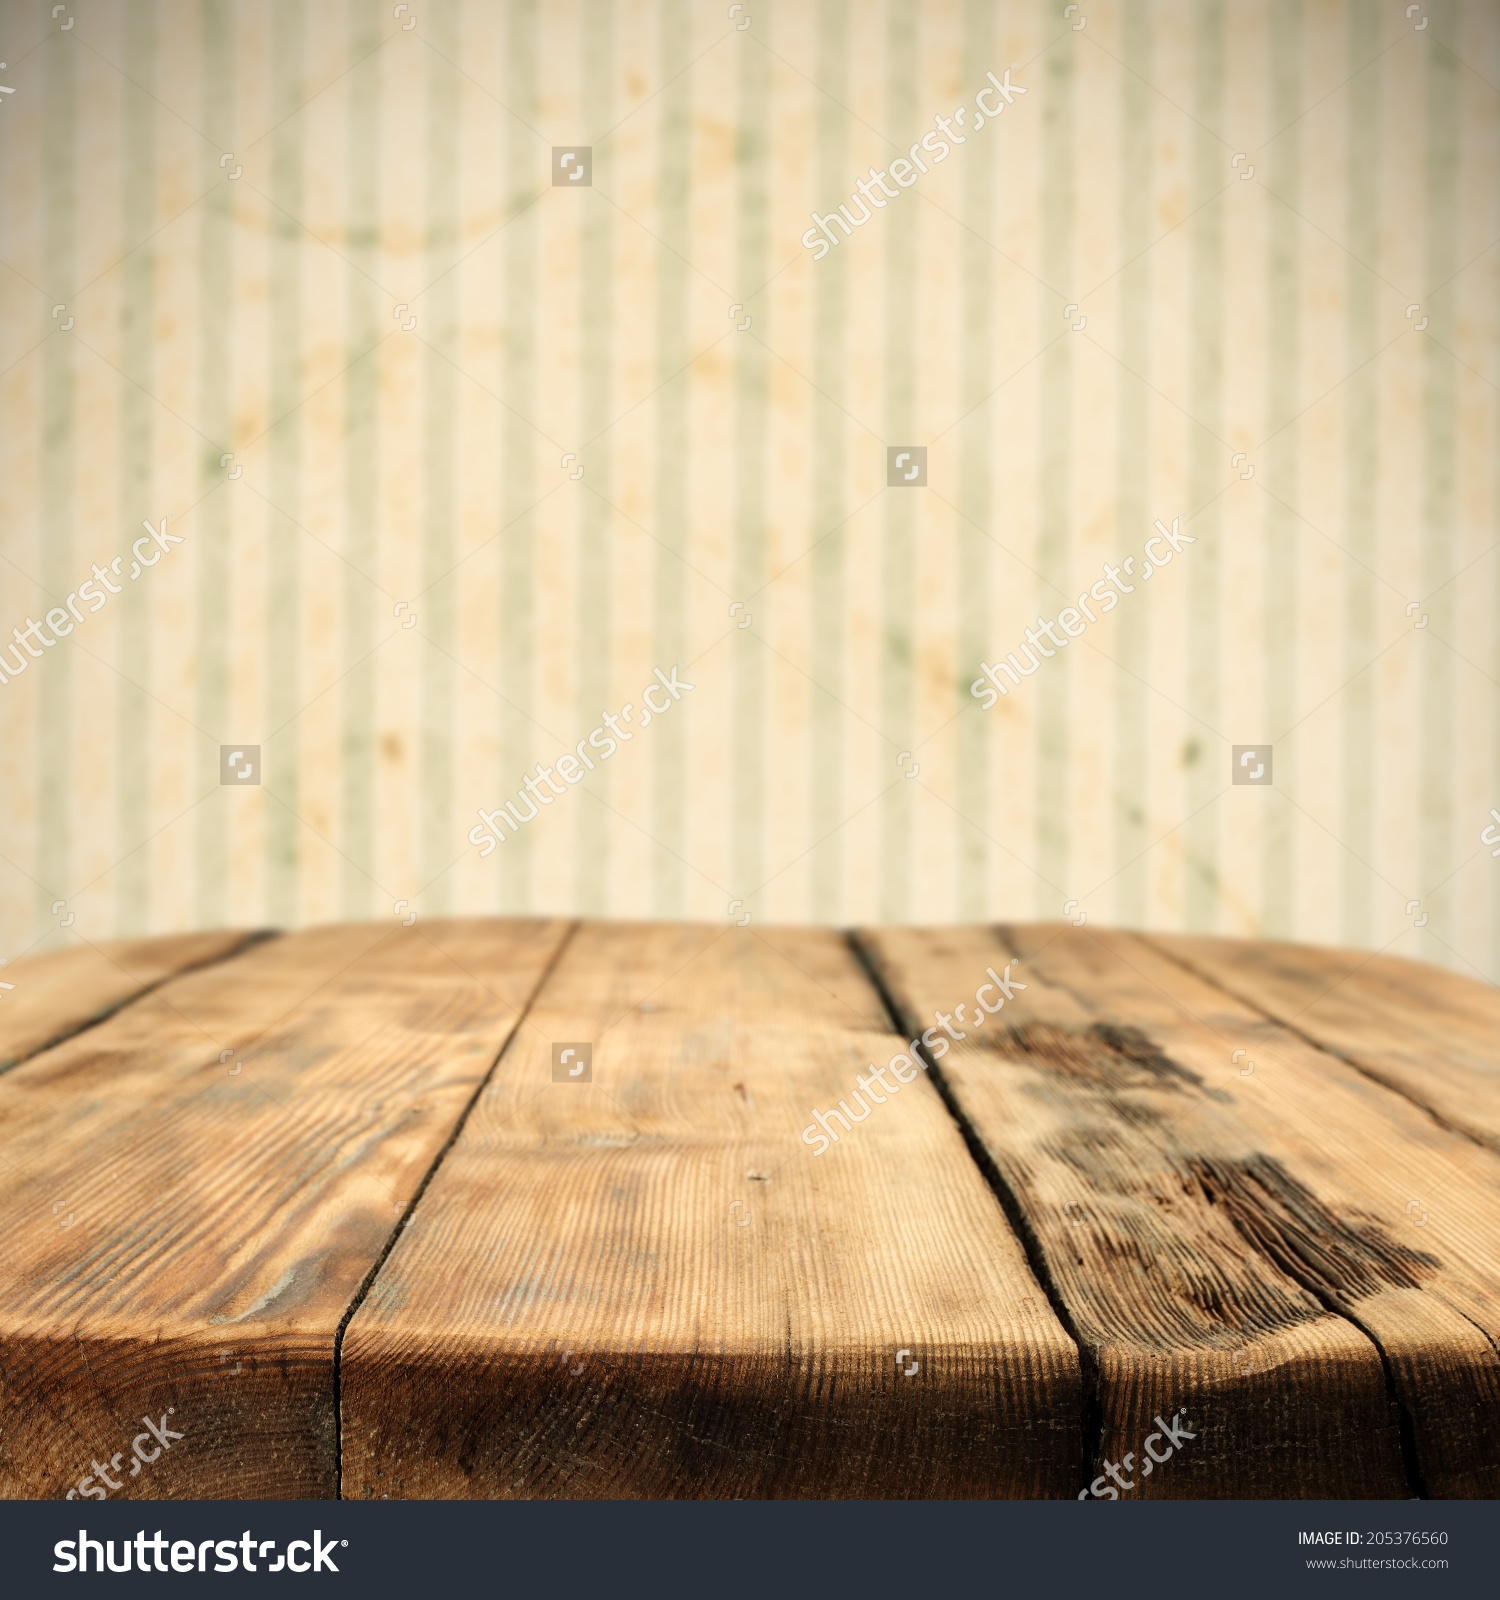 Download wallpaper table gallery for Table wallpaper